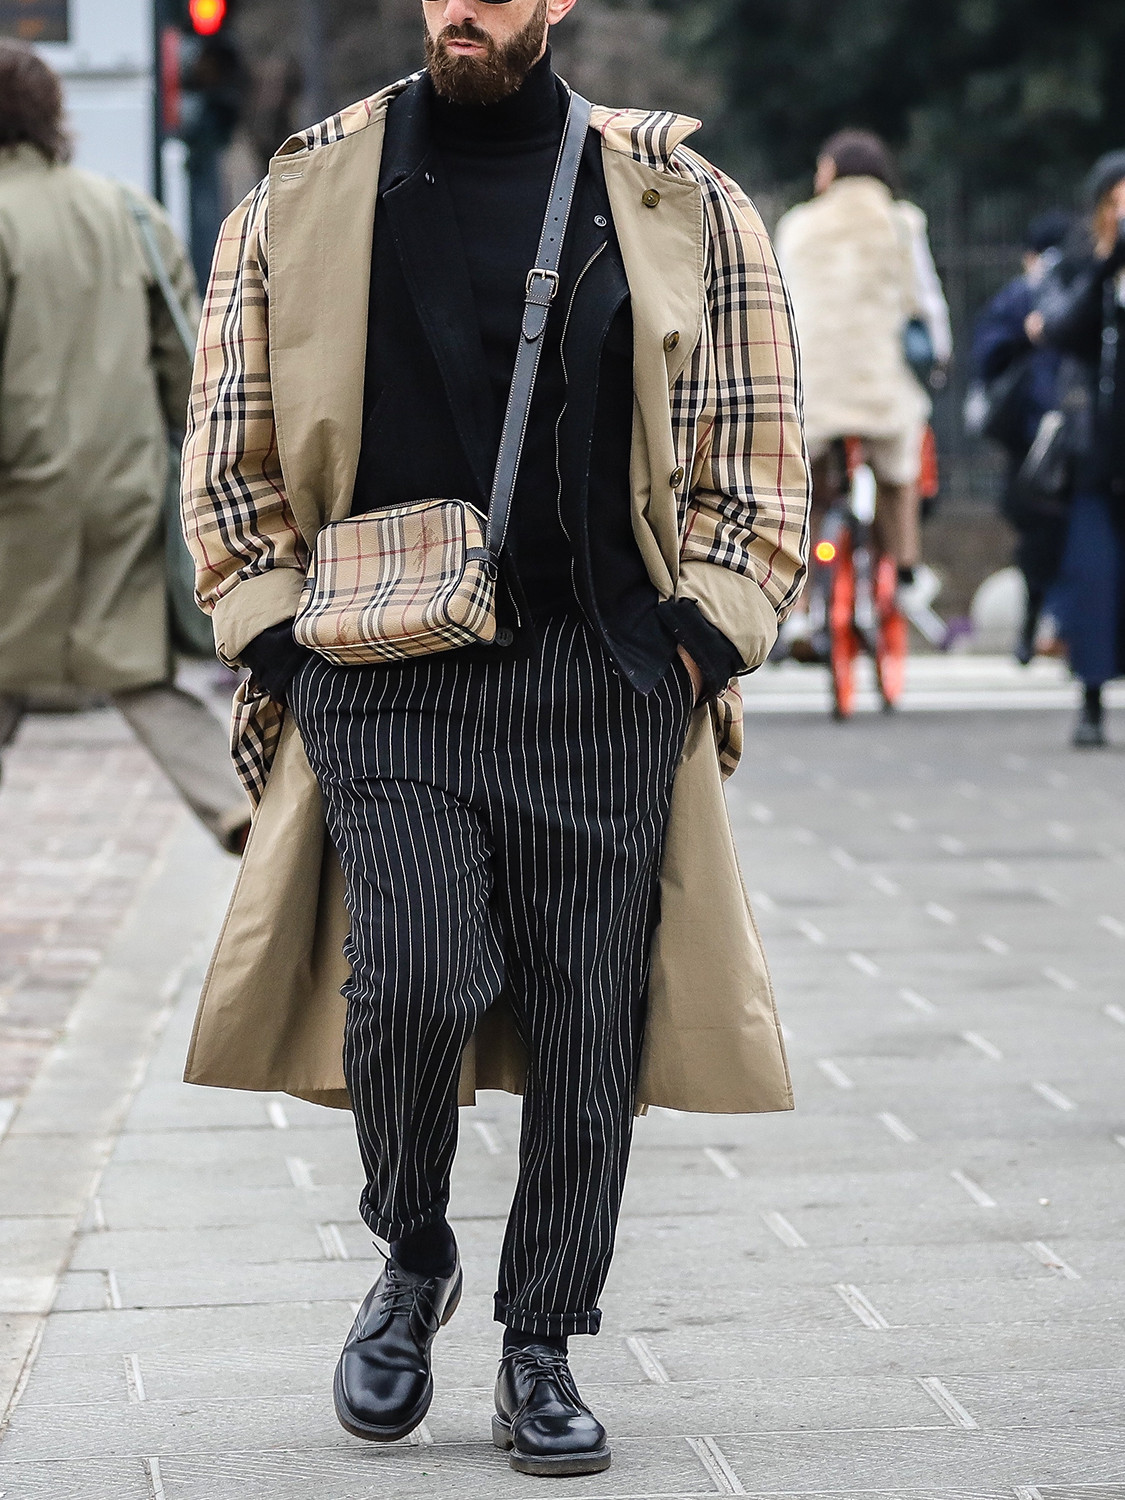 Men's outfit idea for 2021 with stone trench coat, black lightweight rollneck jumper, black formal trousers, black oxford / derby shoes. Suitable for autumn.